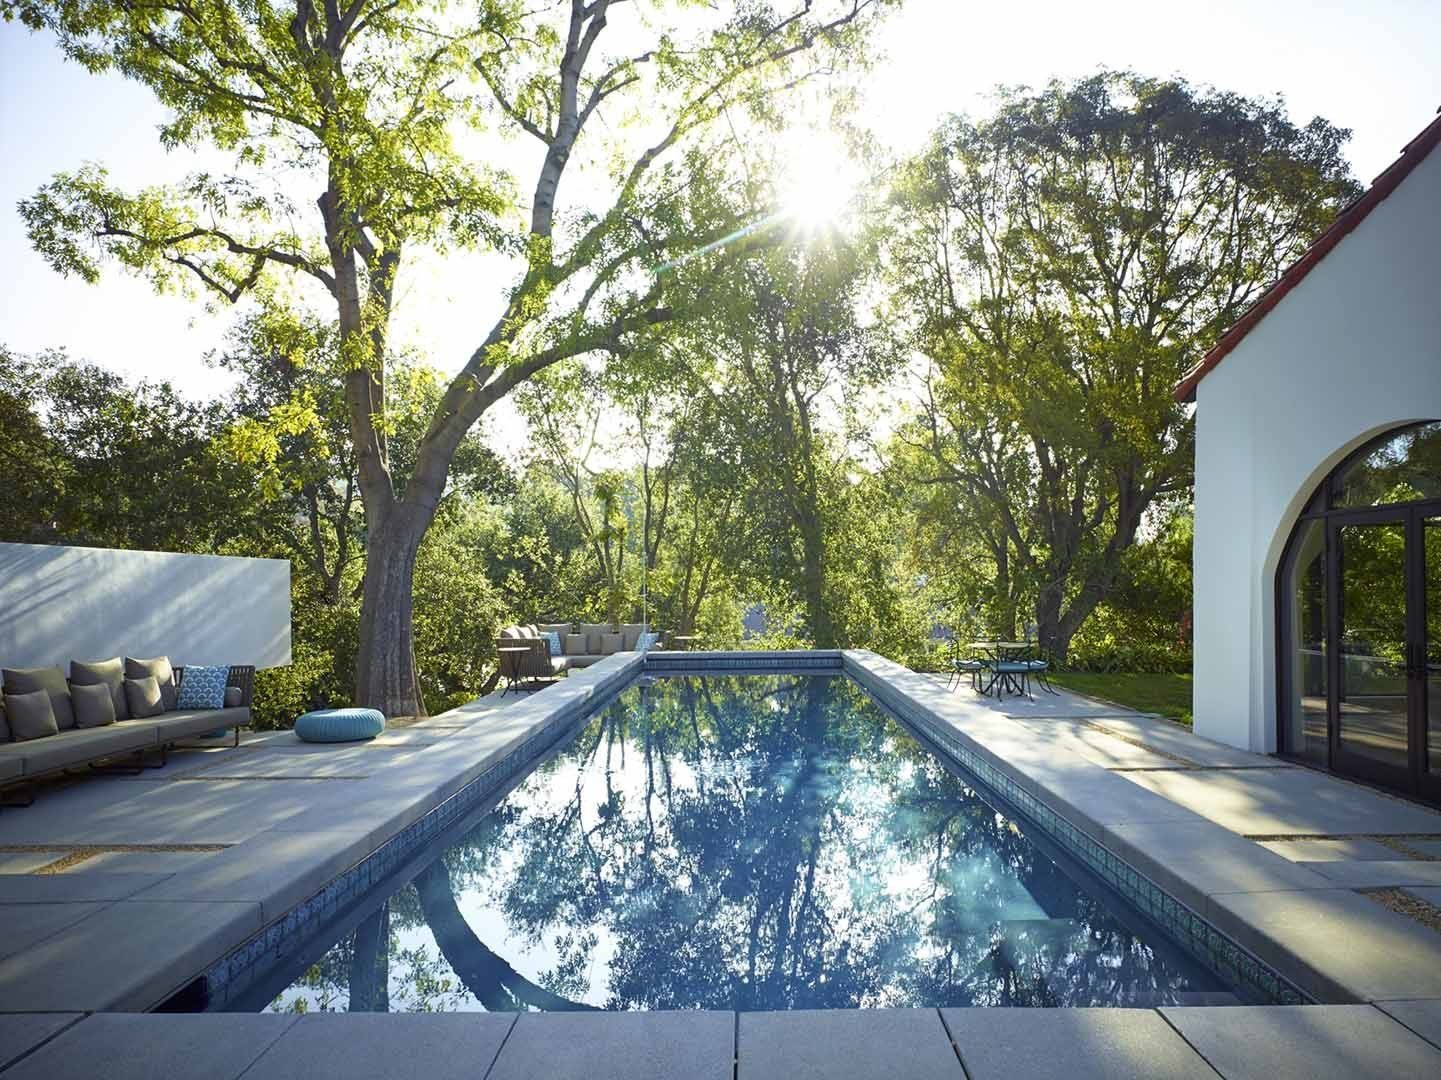 Lined with tiles from the historic Jackling House, designed by George Washington Smith and once owned by Steve Jobs, the pool addition gave reason to further enjoy the southern California climate.  Morgan Phoa Library and Residence